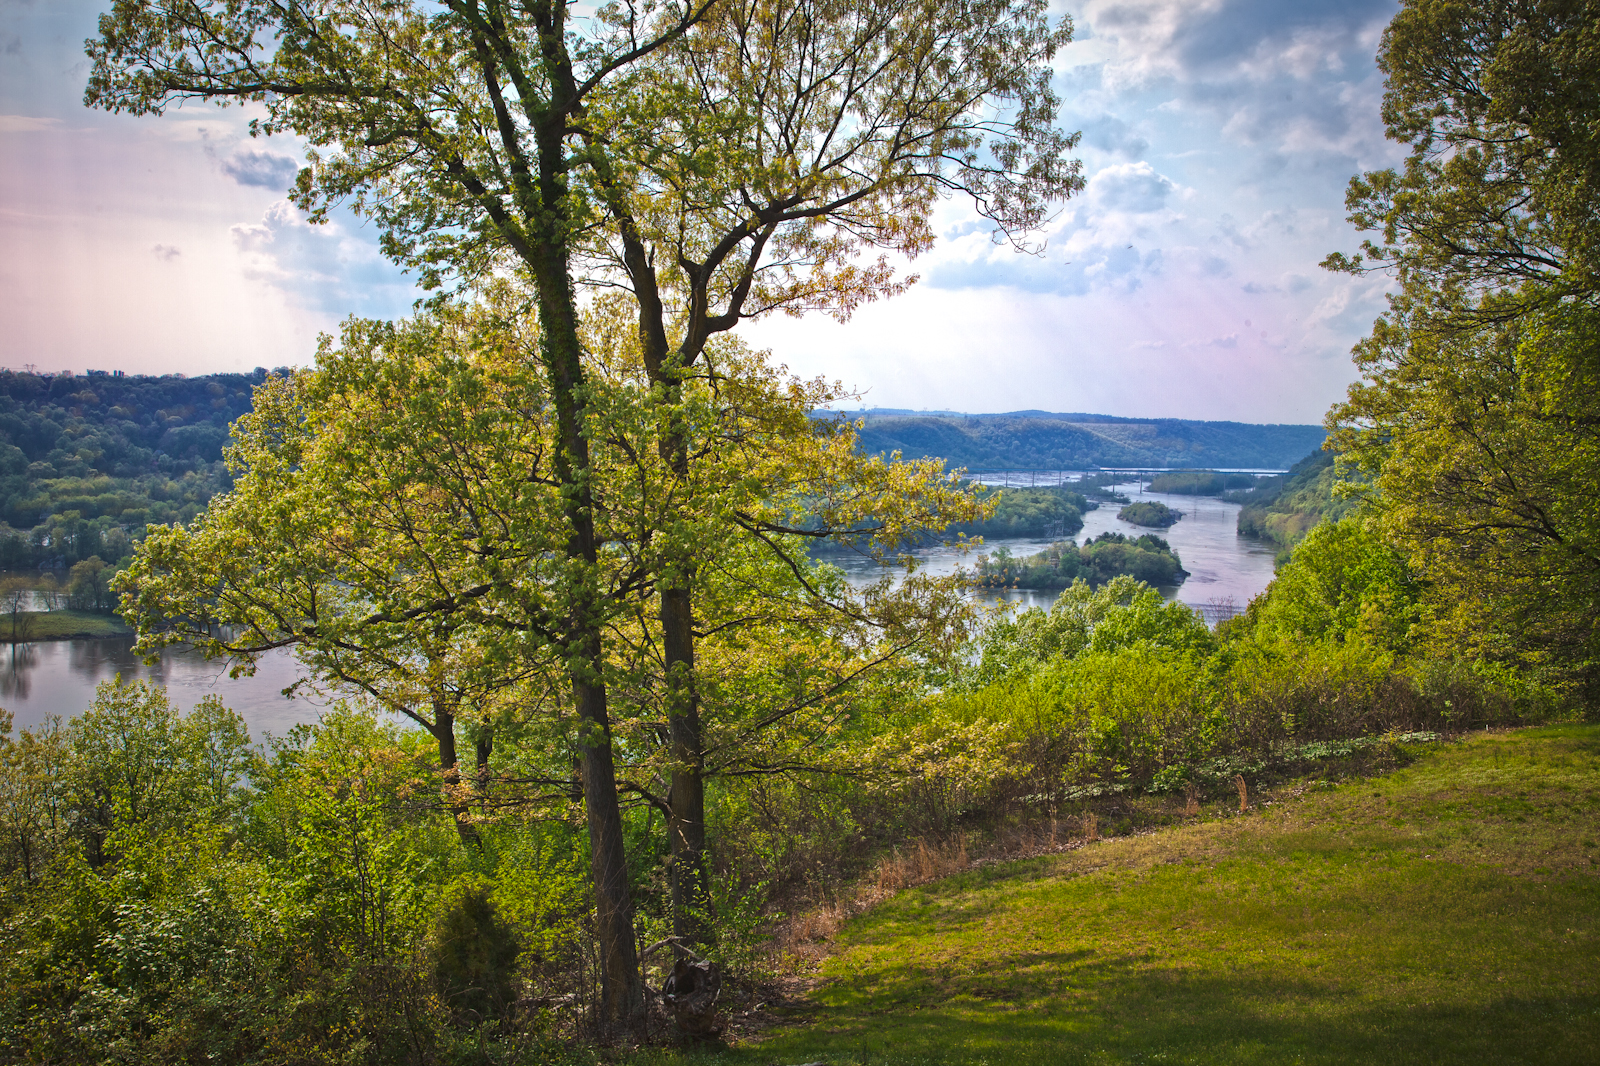 1_Susquehanna-River-Lookout-by-Terri-aigner-50-of-1